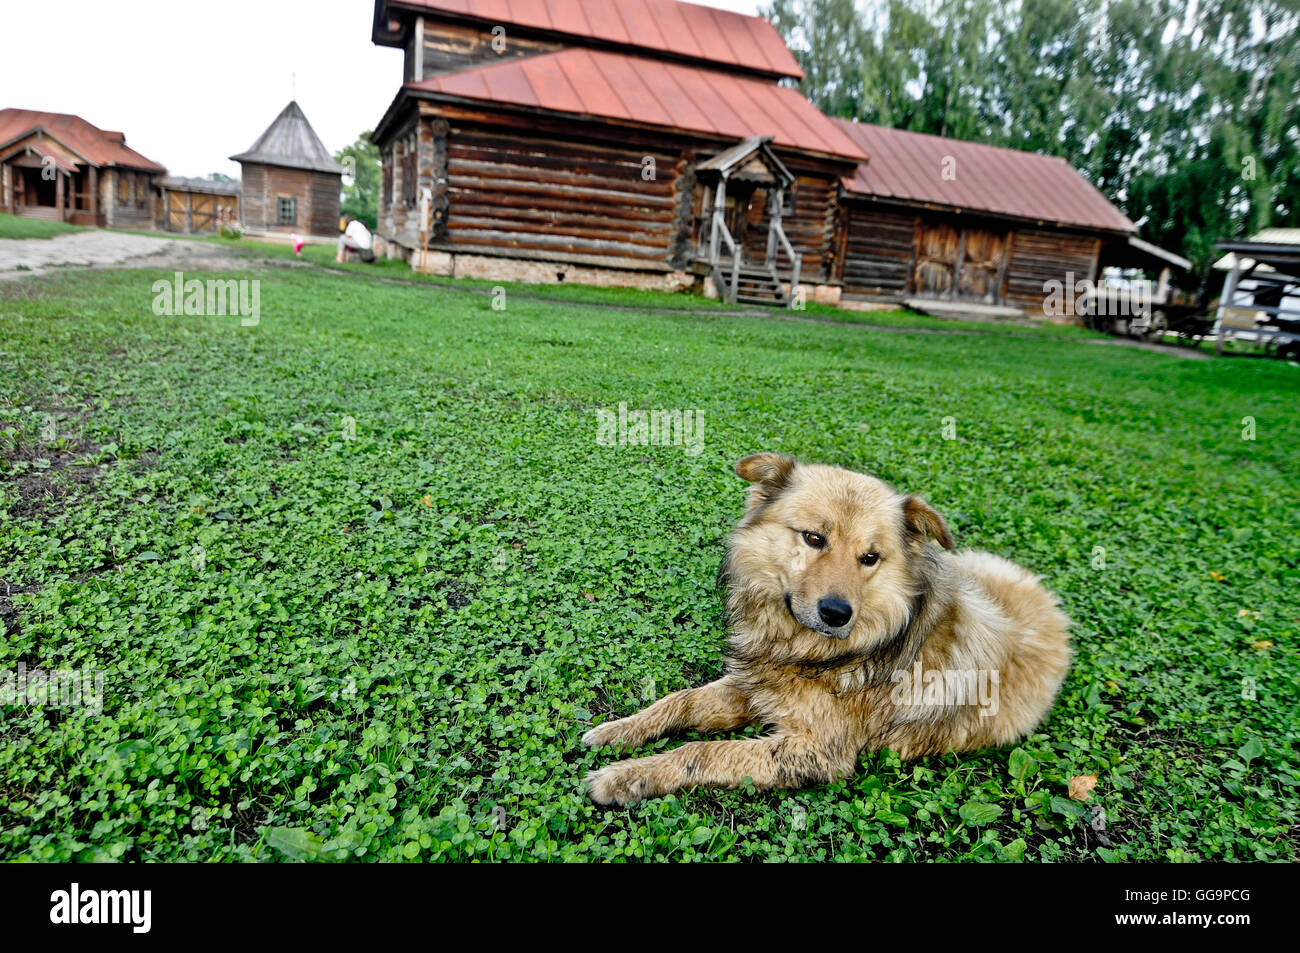 Mixed breed dog lying on grass in Suzdal, Russia - Stock Image